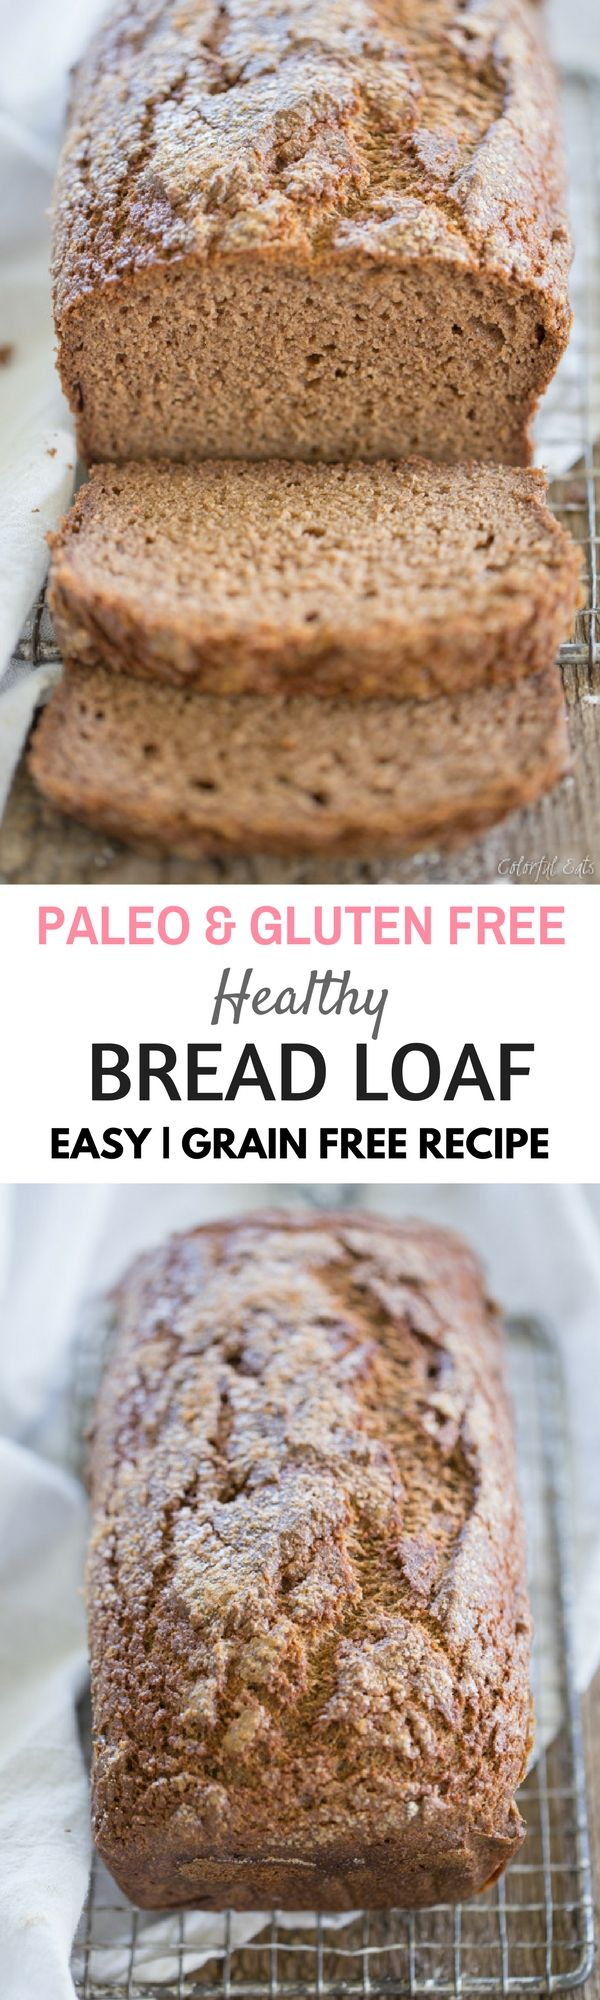 Paleo brown bread. Healthy gluten free best bread recipes for the paleo diet.